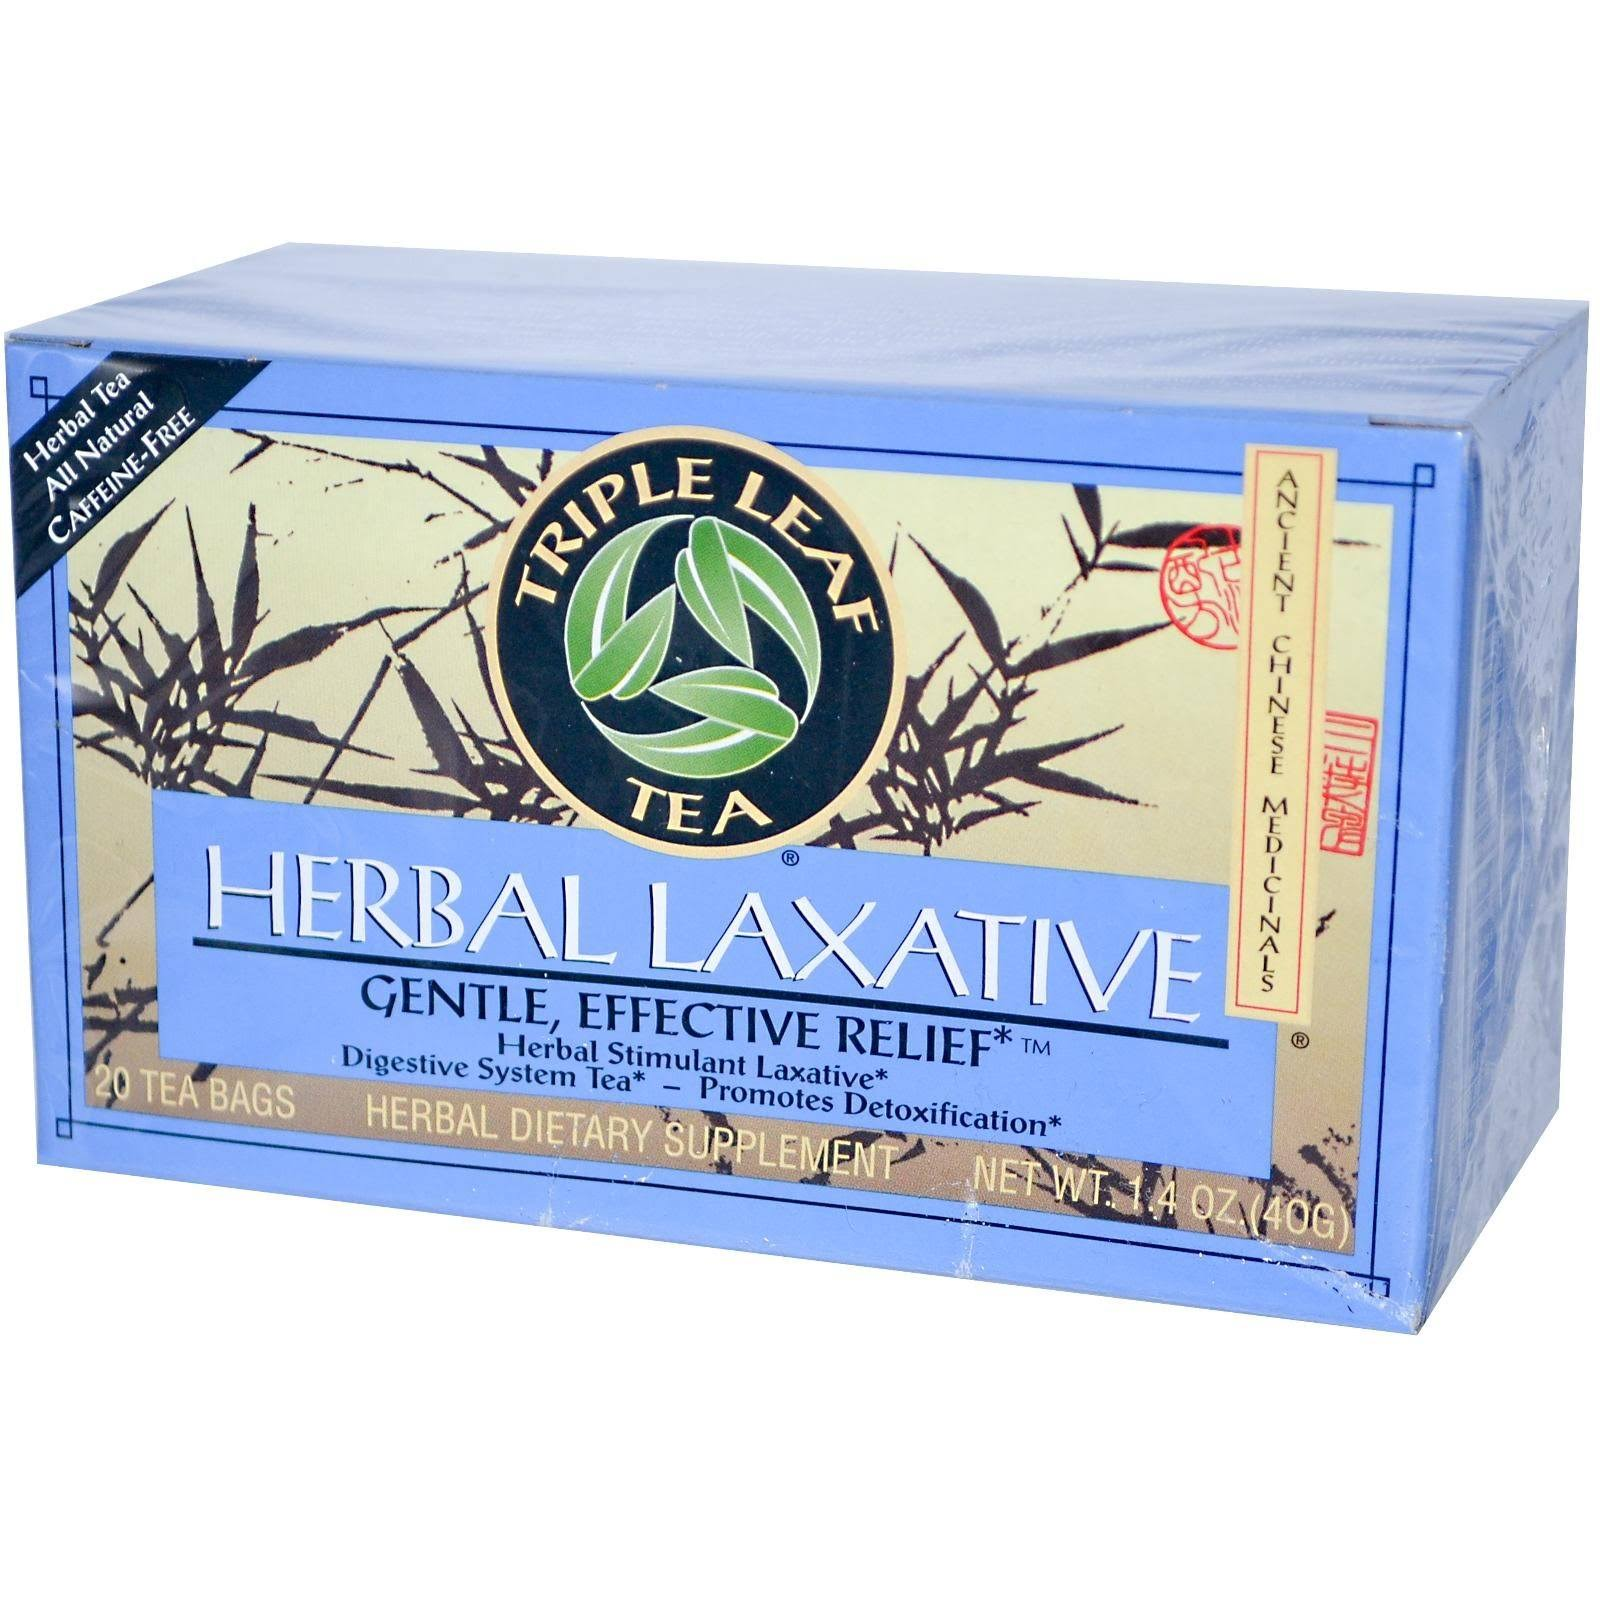 Triple Leaf Tea Herbal Laxative Tea - 20 Tea Bags, 1.4oz